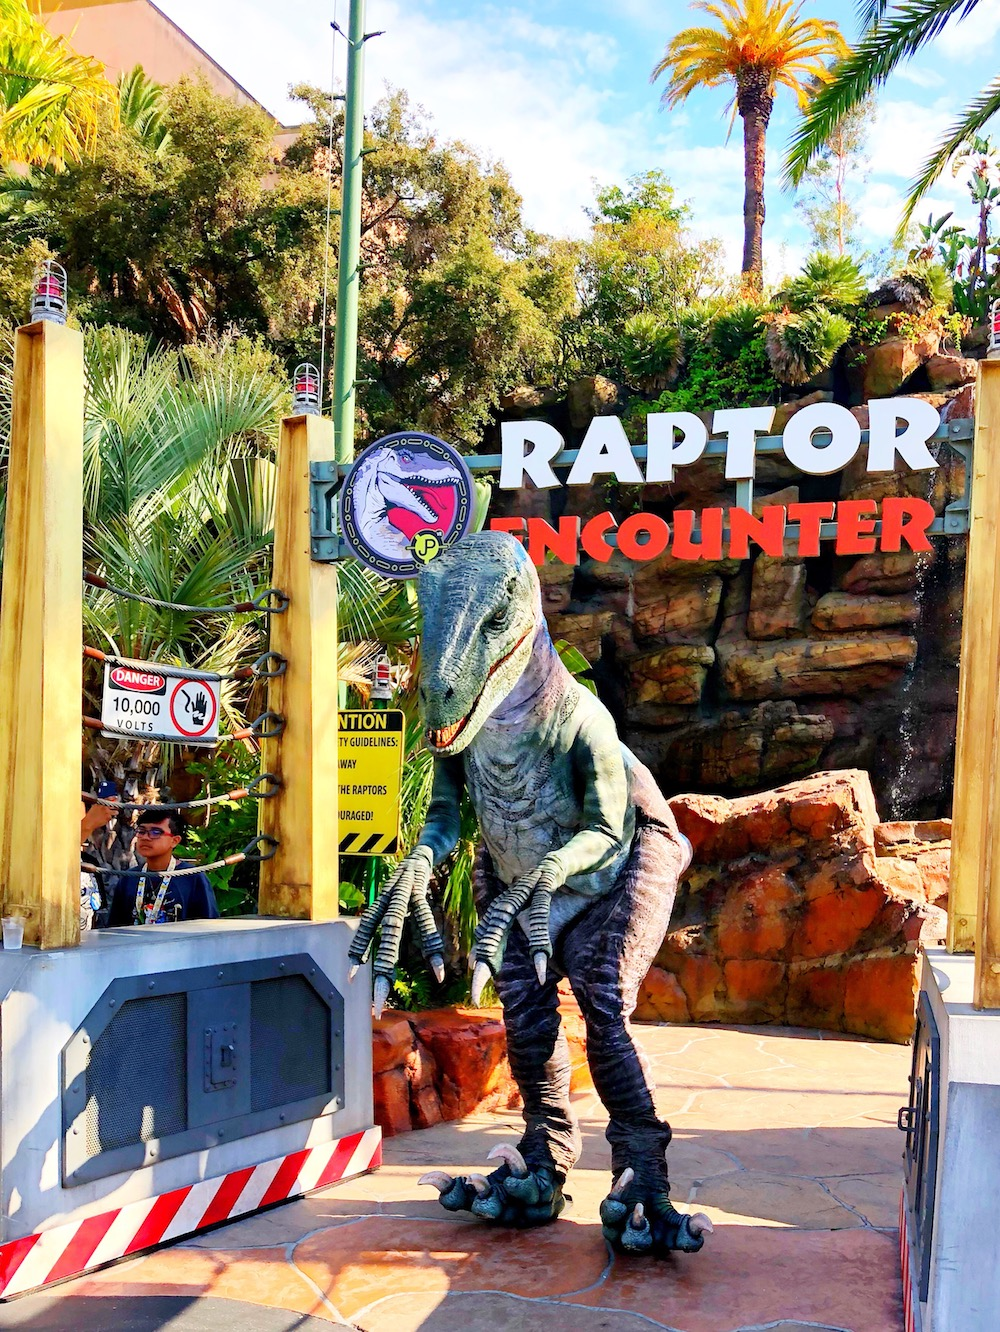 Raptor encounter location at universal studios - livingmividaloca.com